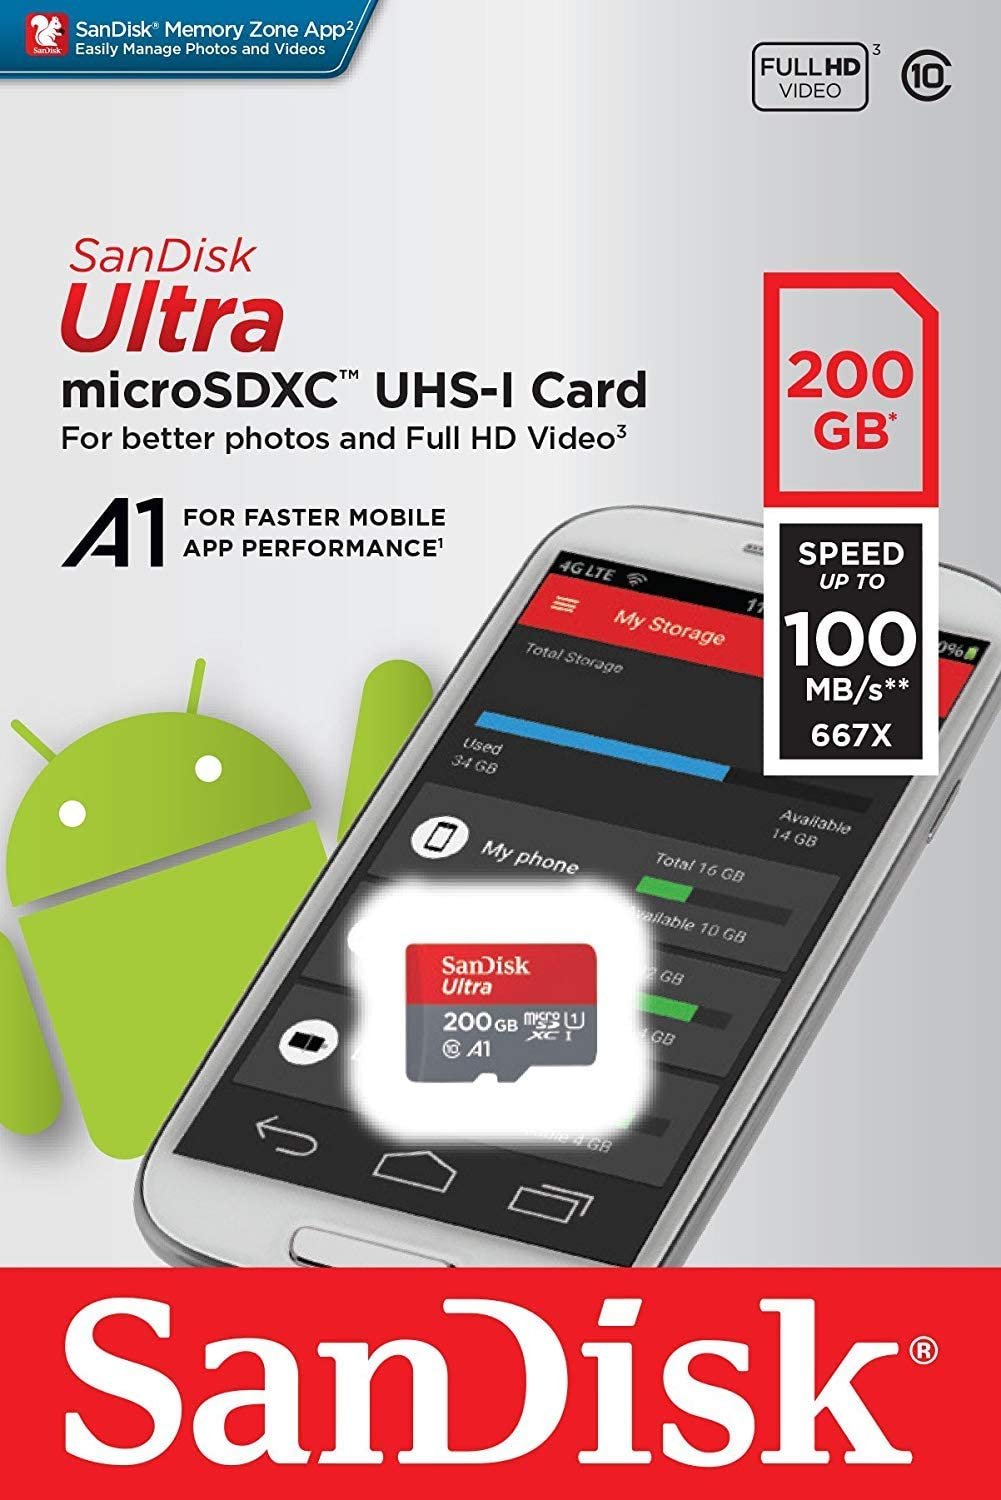 SanDisk Ultra 200GB MicroSDXC Verified for Karbonn Titanium S200HD by SanFlash 100MBs A1 U1 C10 Works with SanDisk